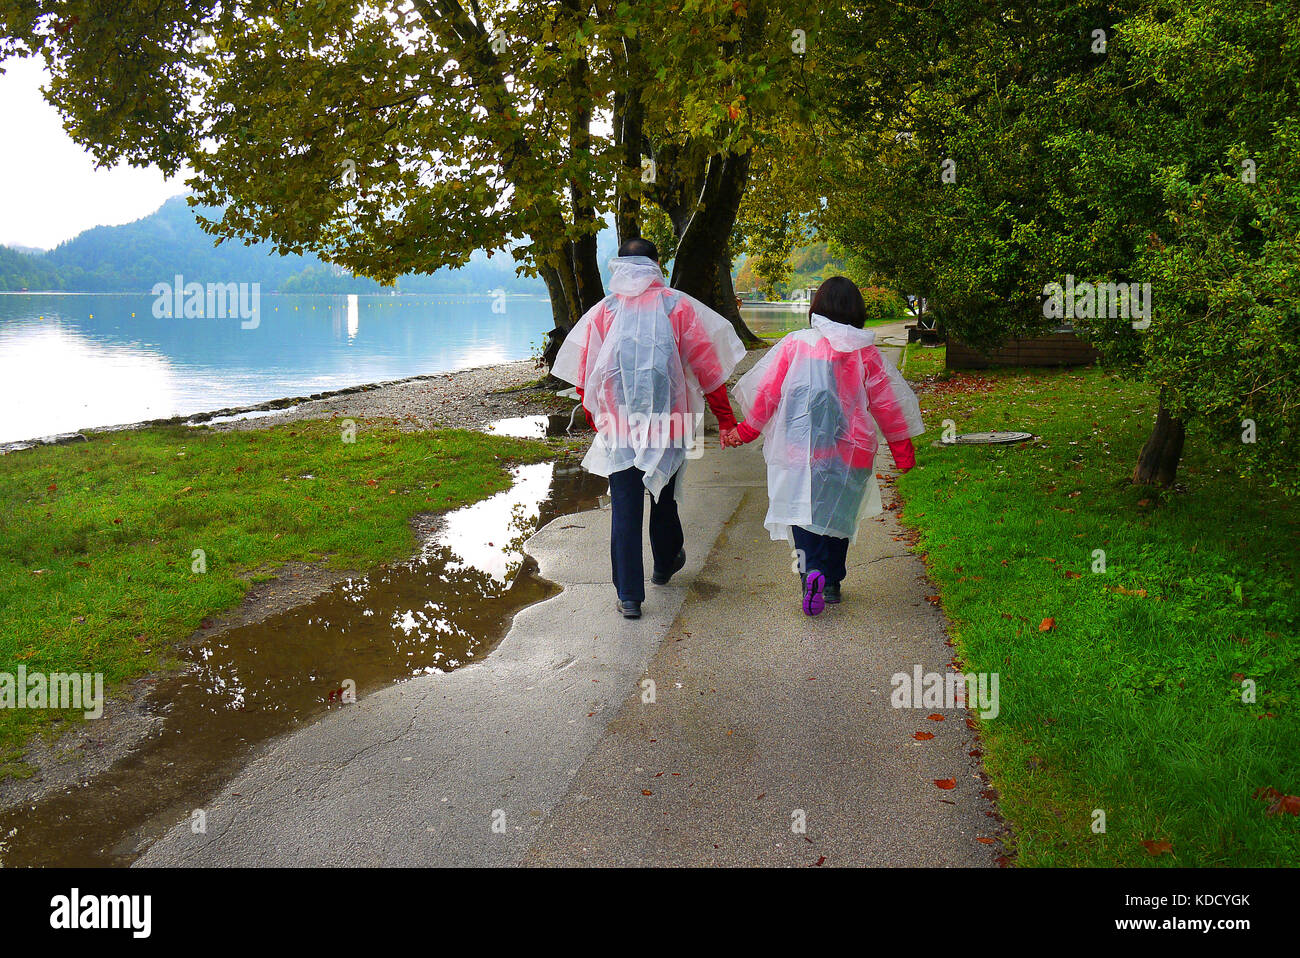 A couple in fold-up raincoats walk beside Lake Bled in Bled, Slovenia. - Stock Image